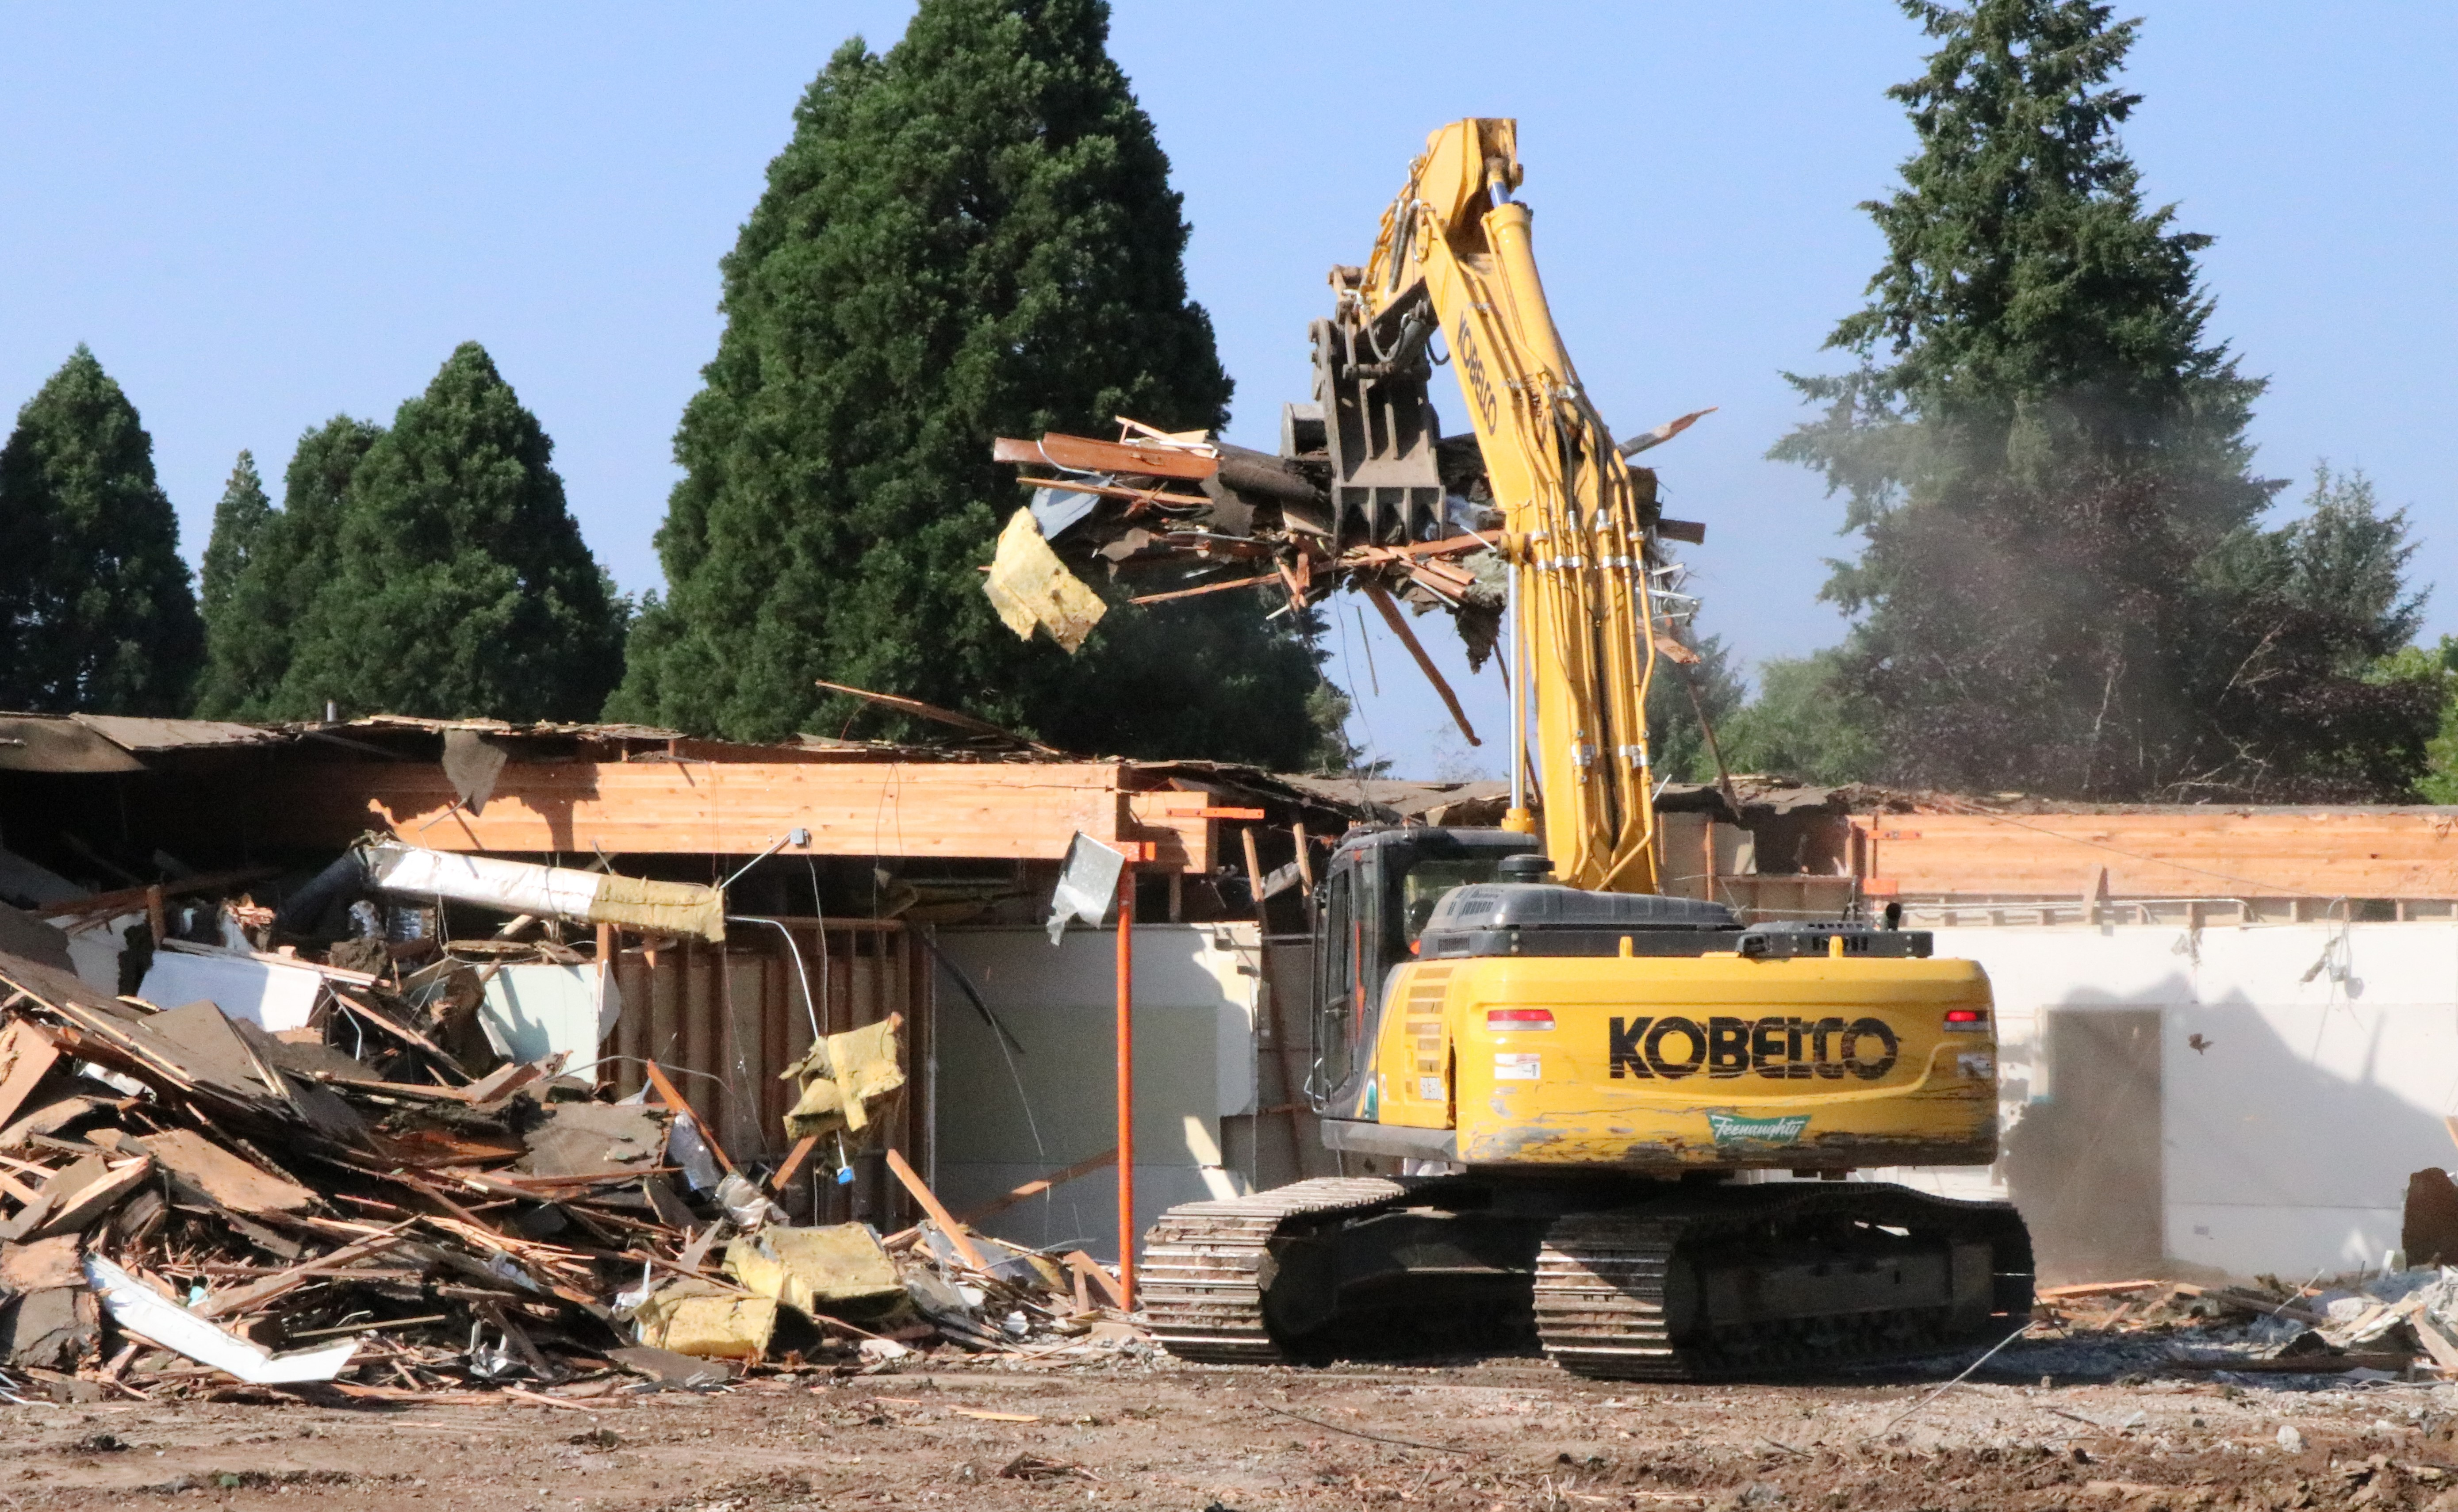 An excavator tears down a wing of the James Templeton Elementary School.